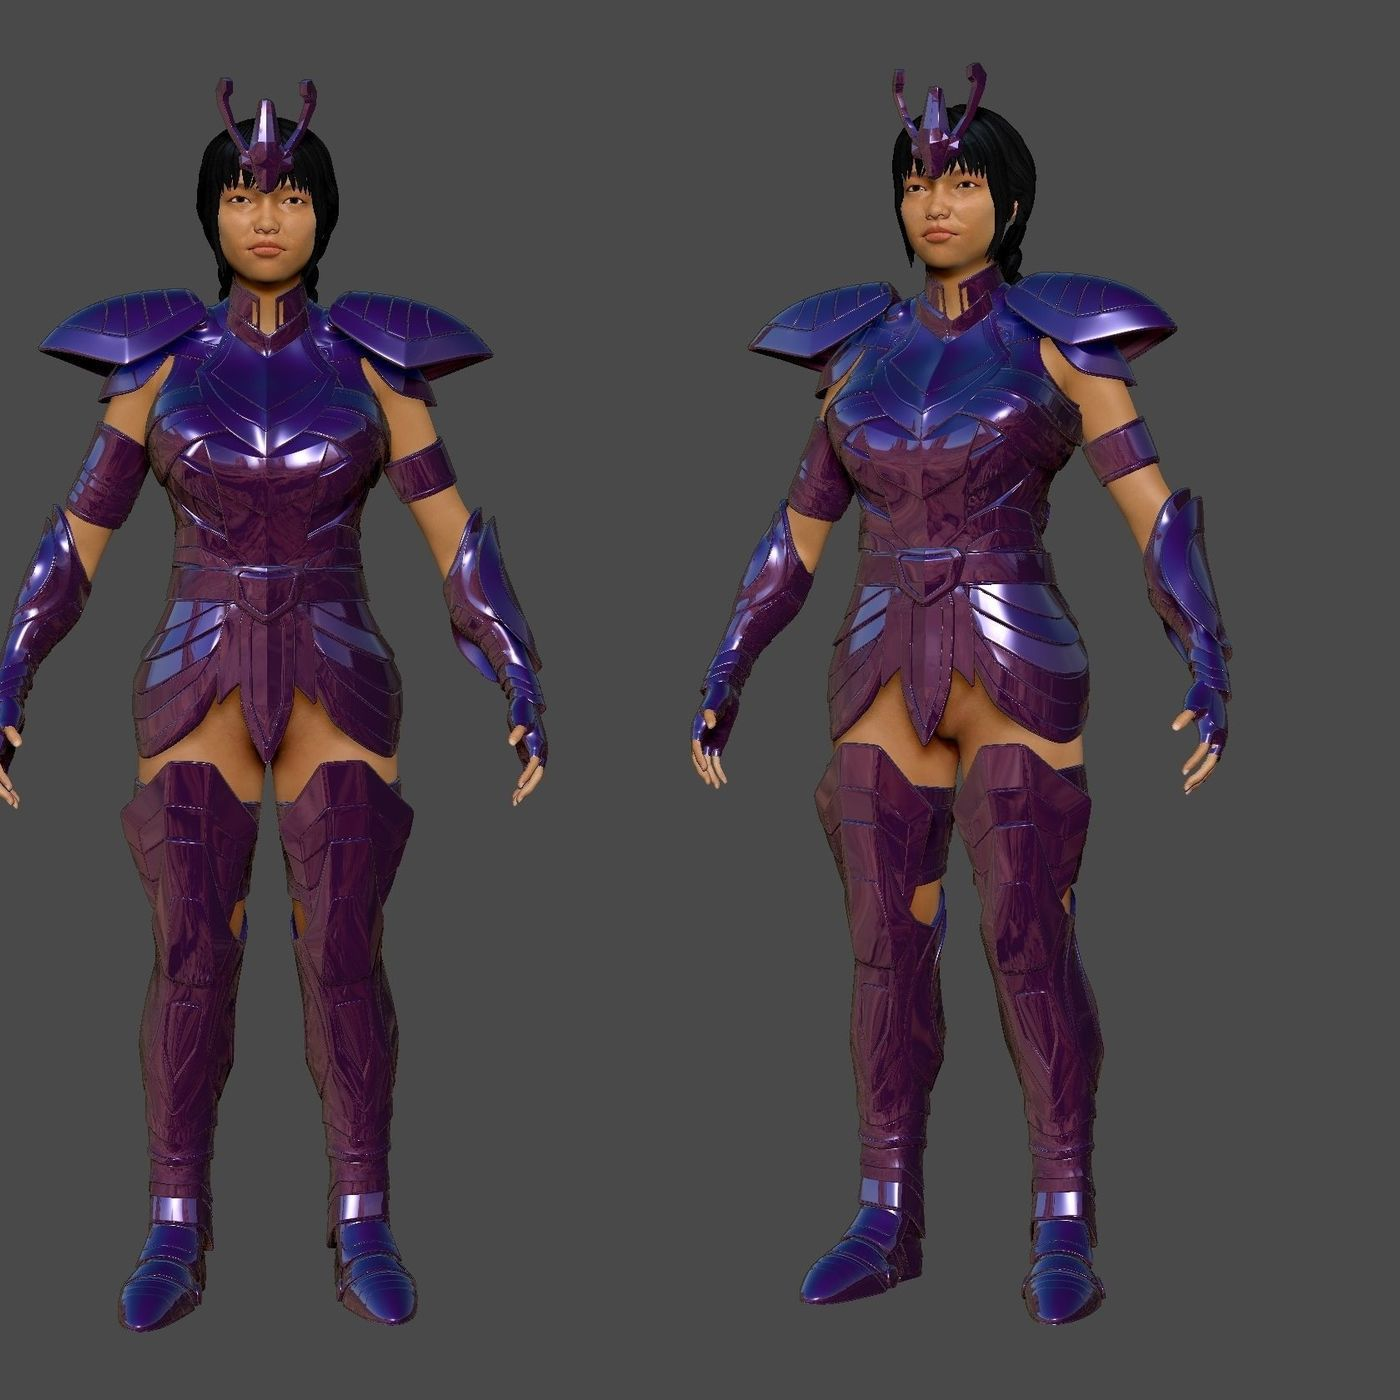 3D printable armored Lady warriors